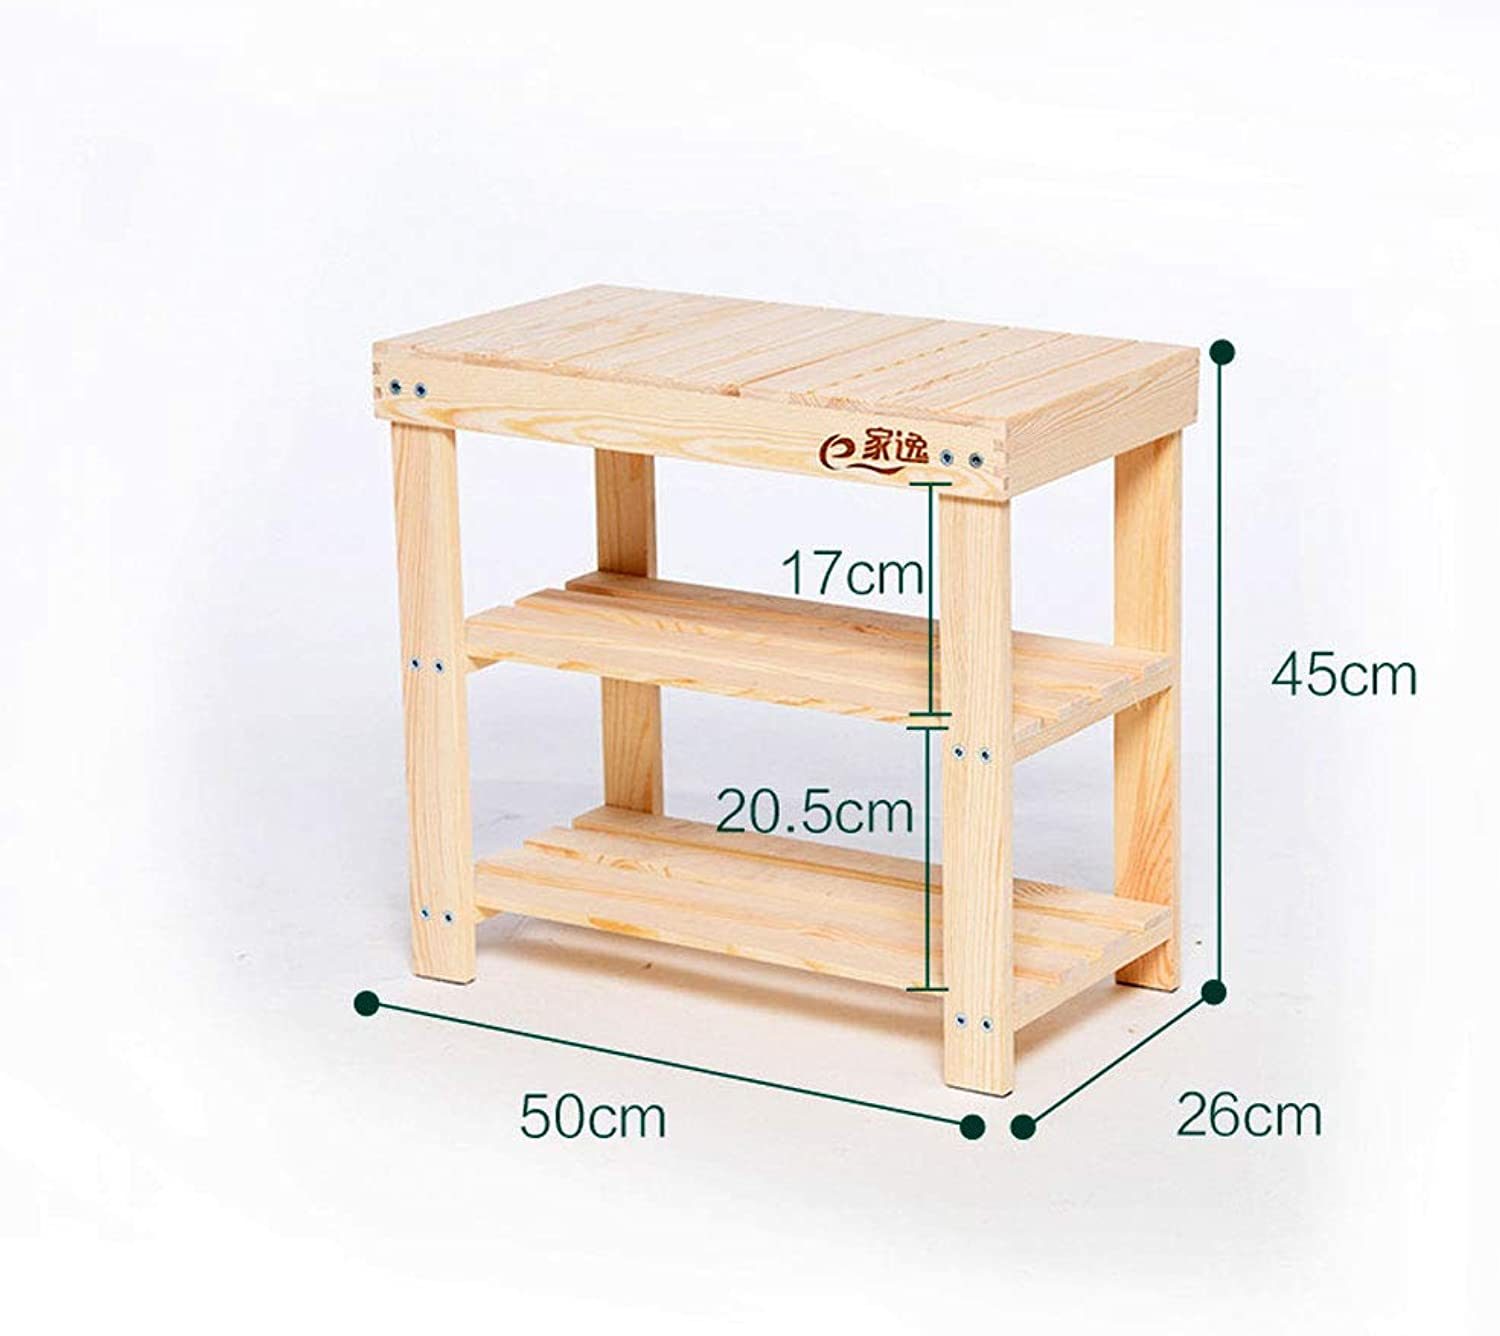 Simple Solid Wood shoes Bench Garden Furniture Test shoes Stool Pine shoes Storage Stool,50  26  45cm